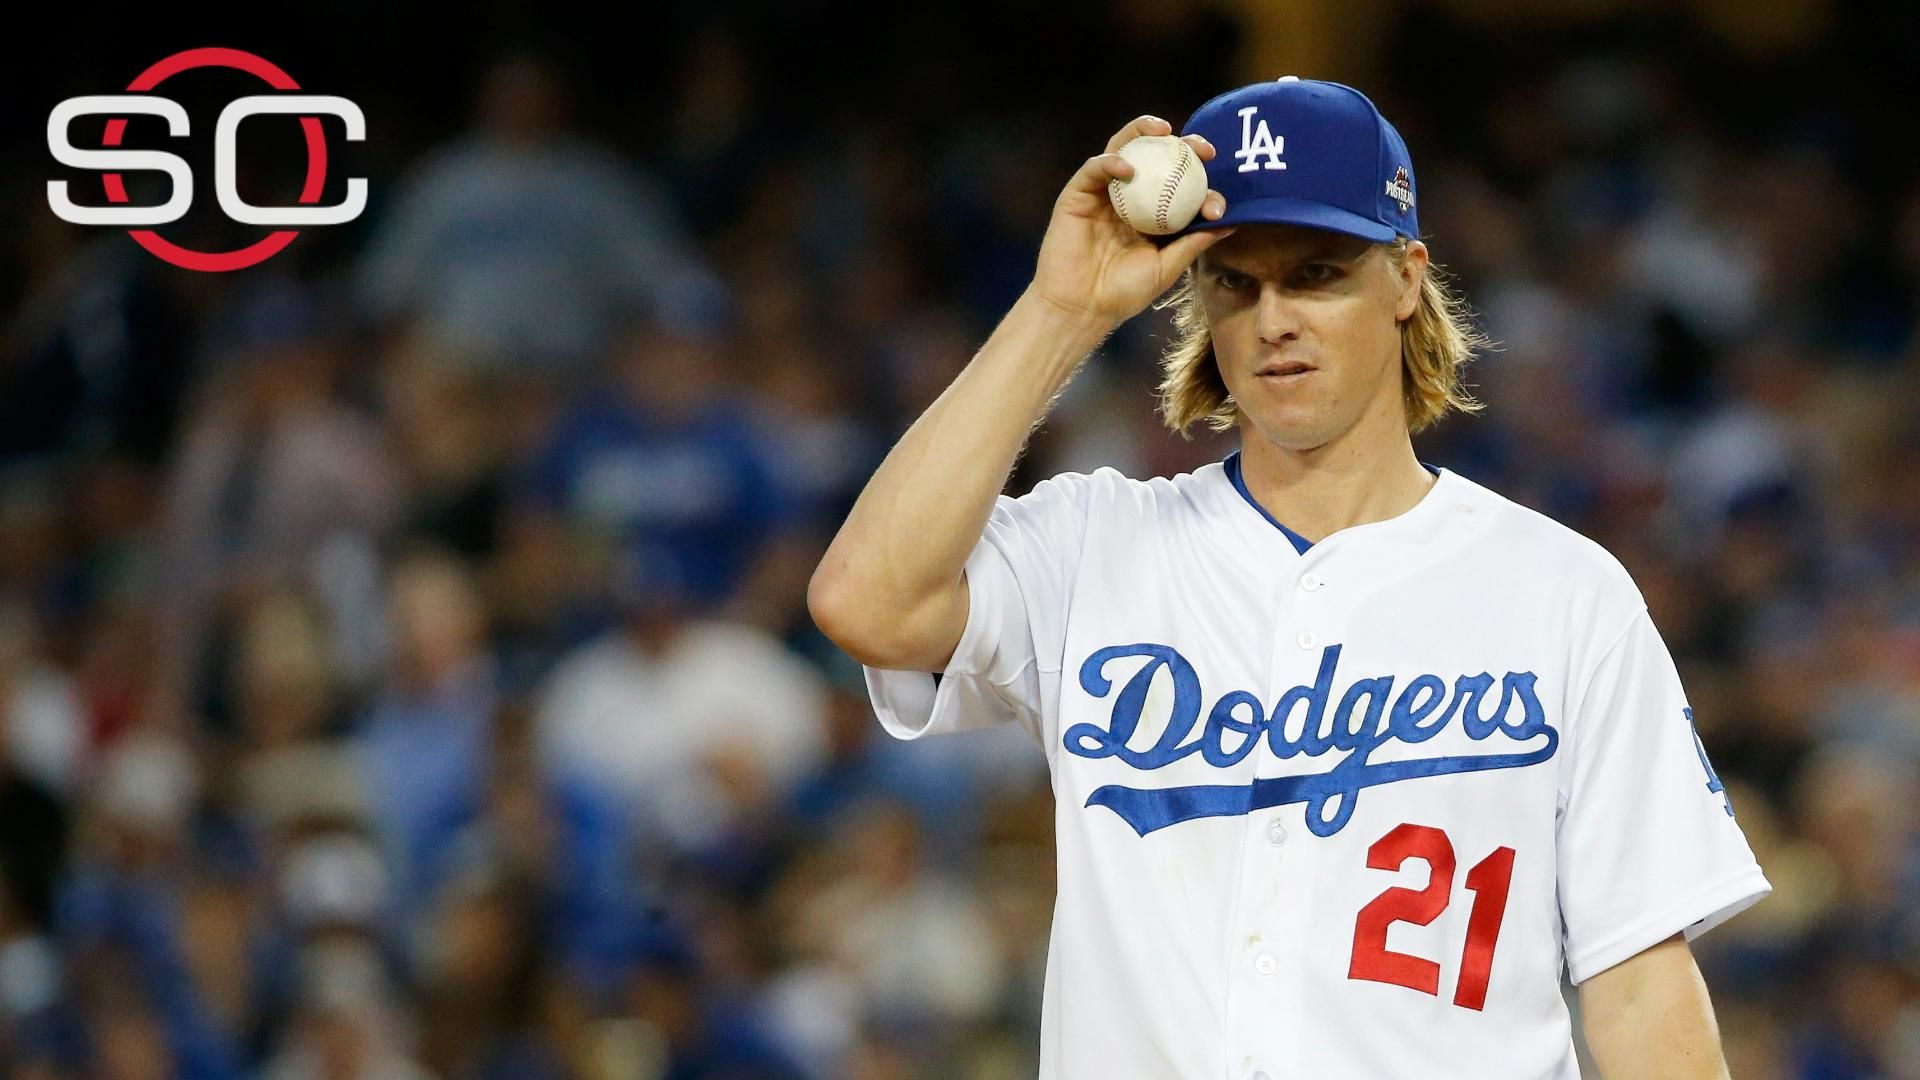 Is Greinke's time in LA over?